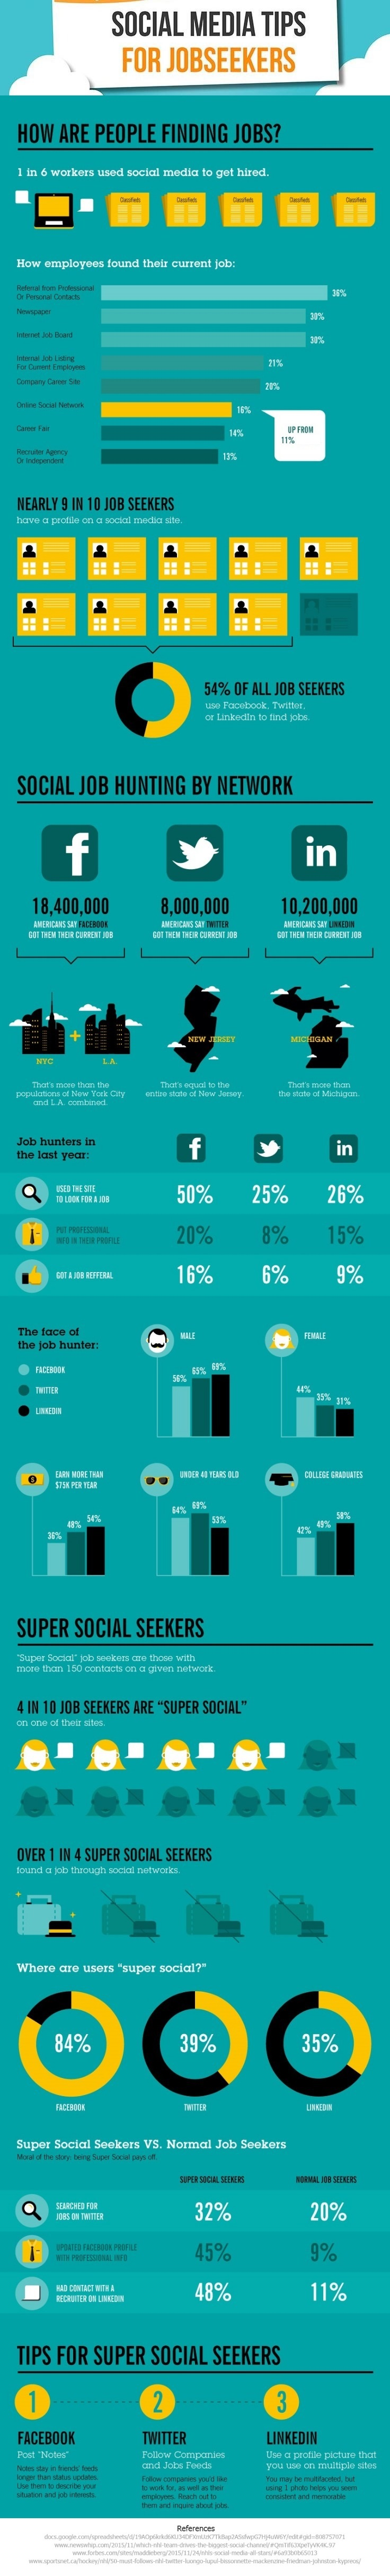 Social Media Tips For Job Seekers [Infographic]